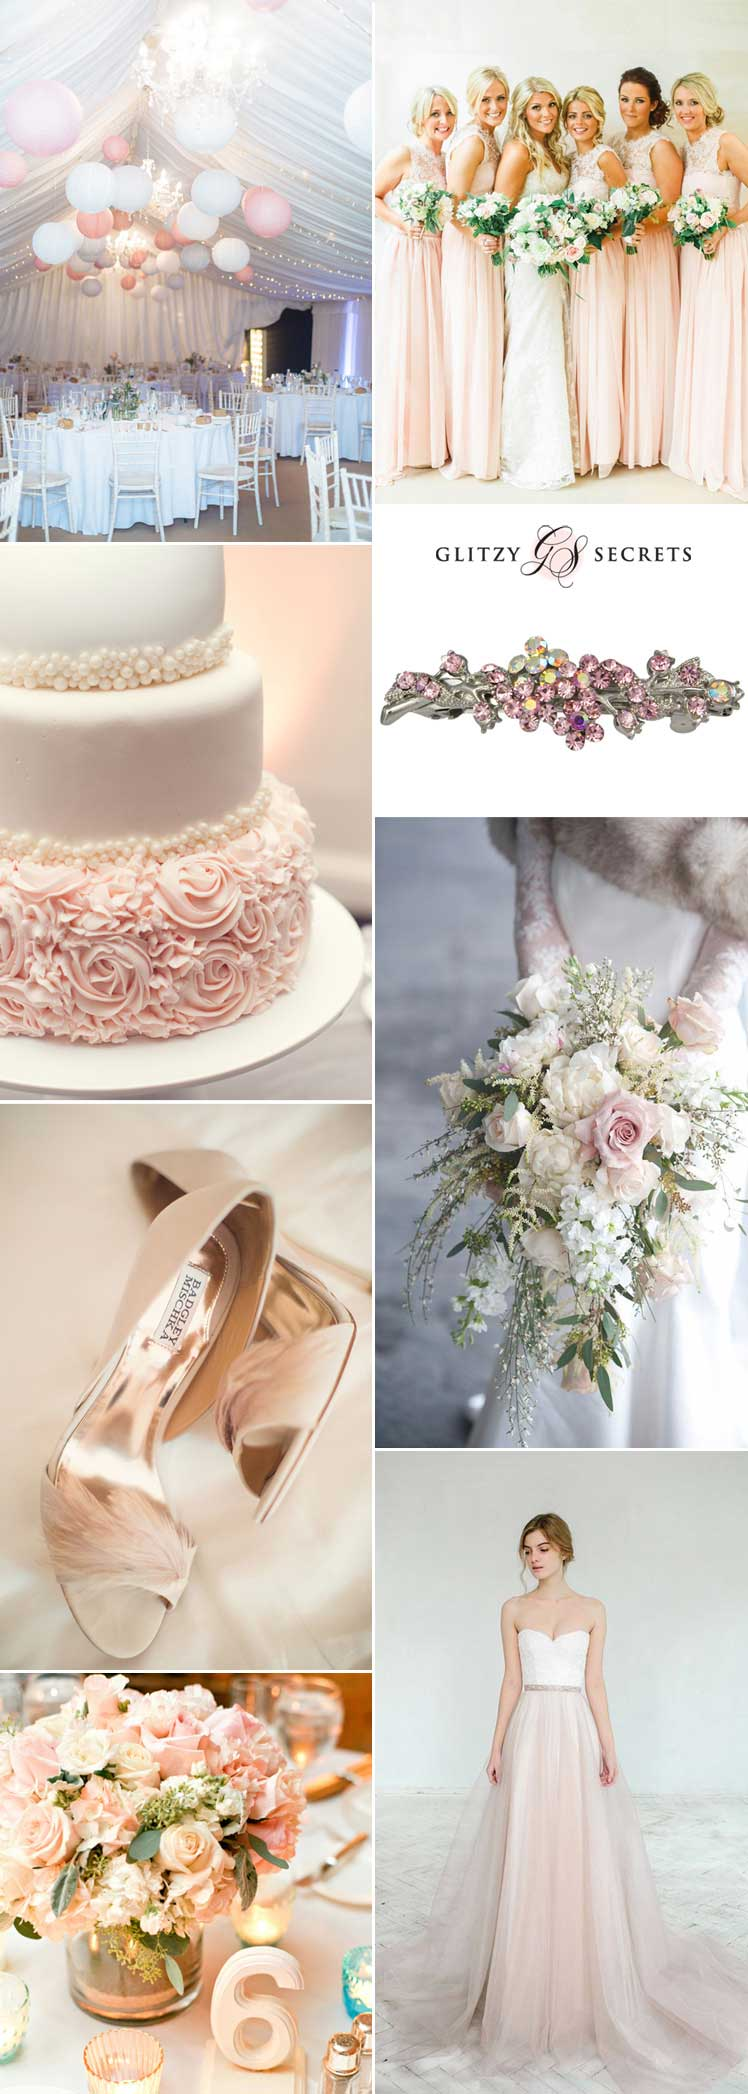 Ivory and blush wedding theme ideas